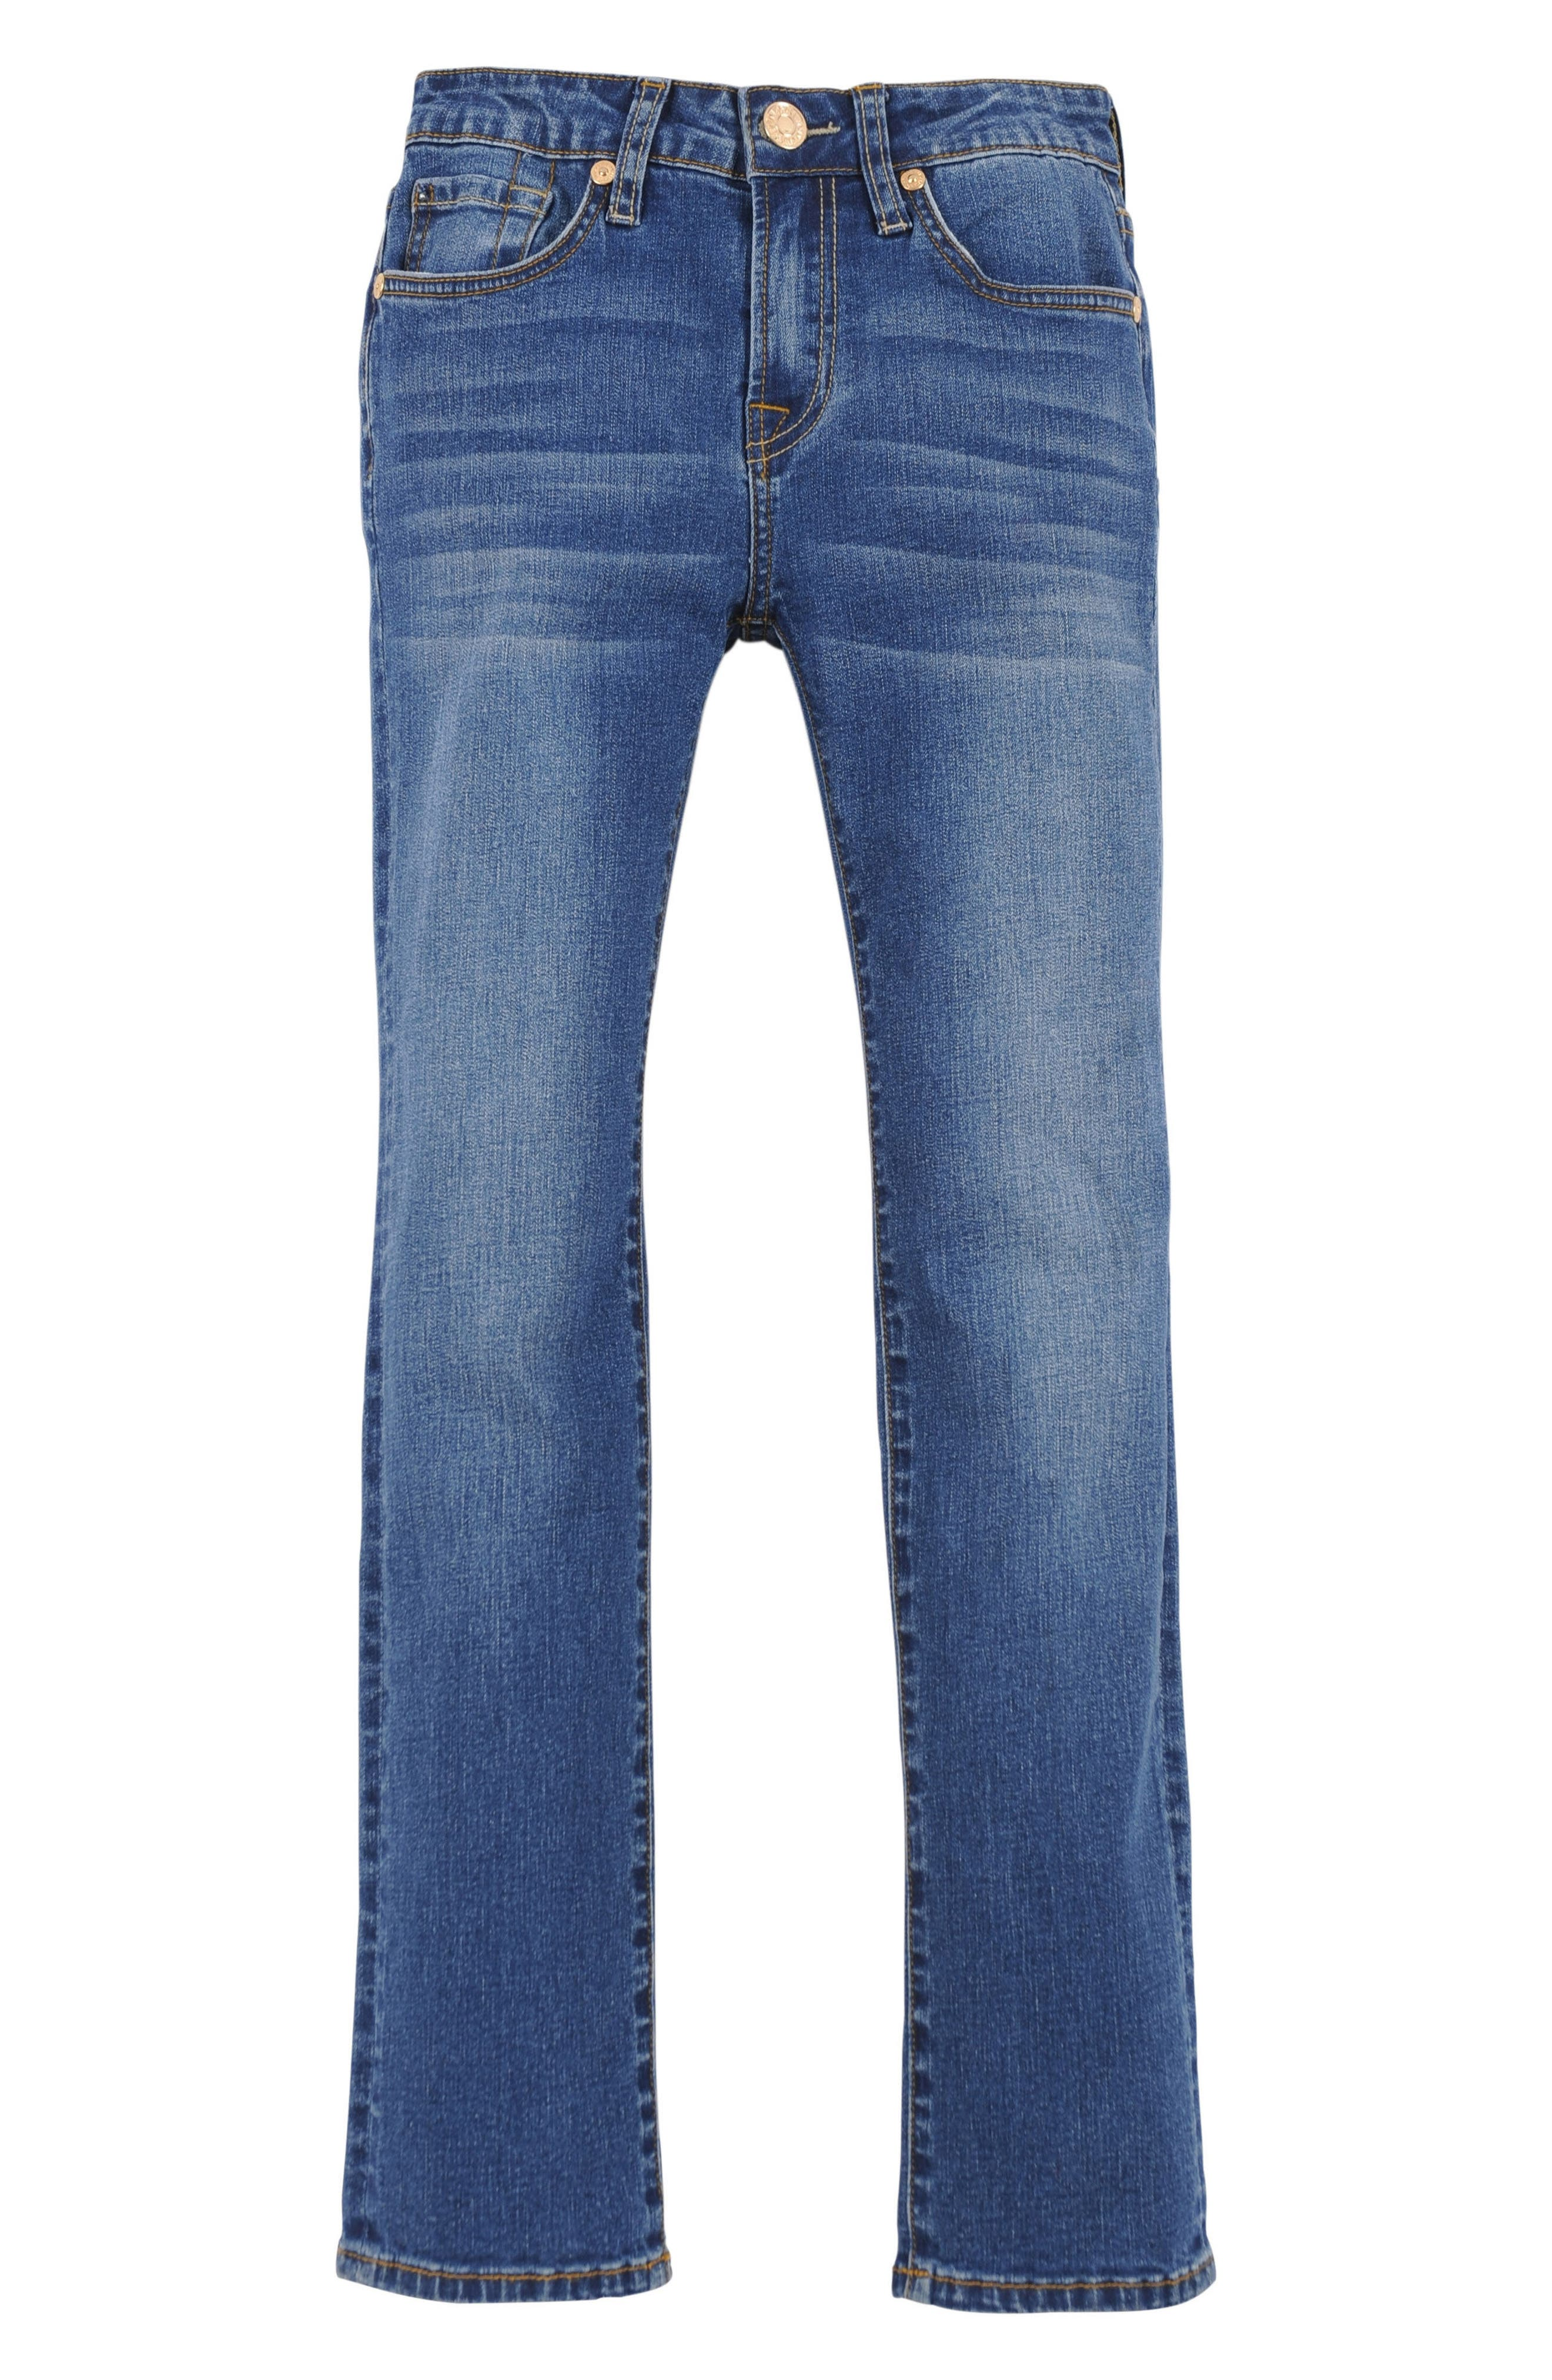 Slimmy Foolproof Slim Fit Jeans,                             Main thumbnail 1, color,                             Bristol